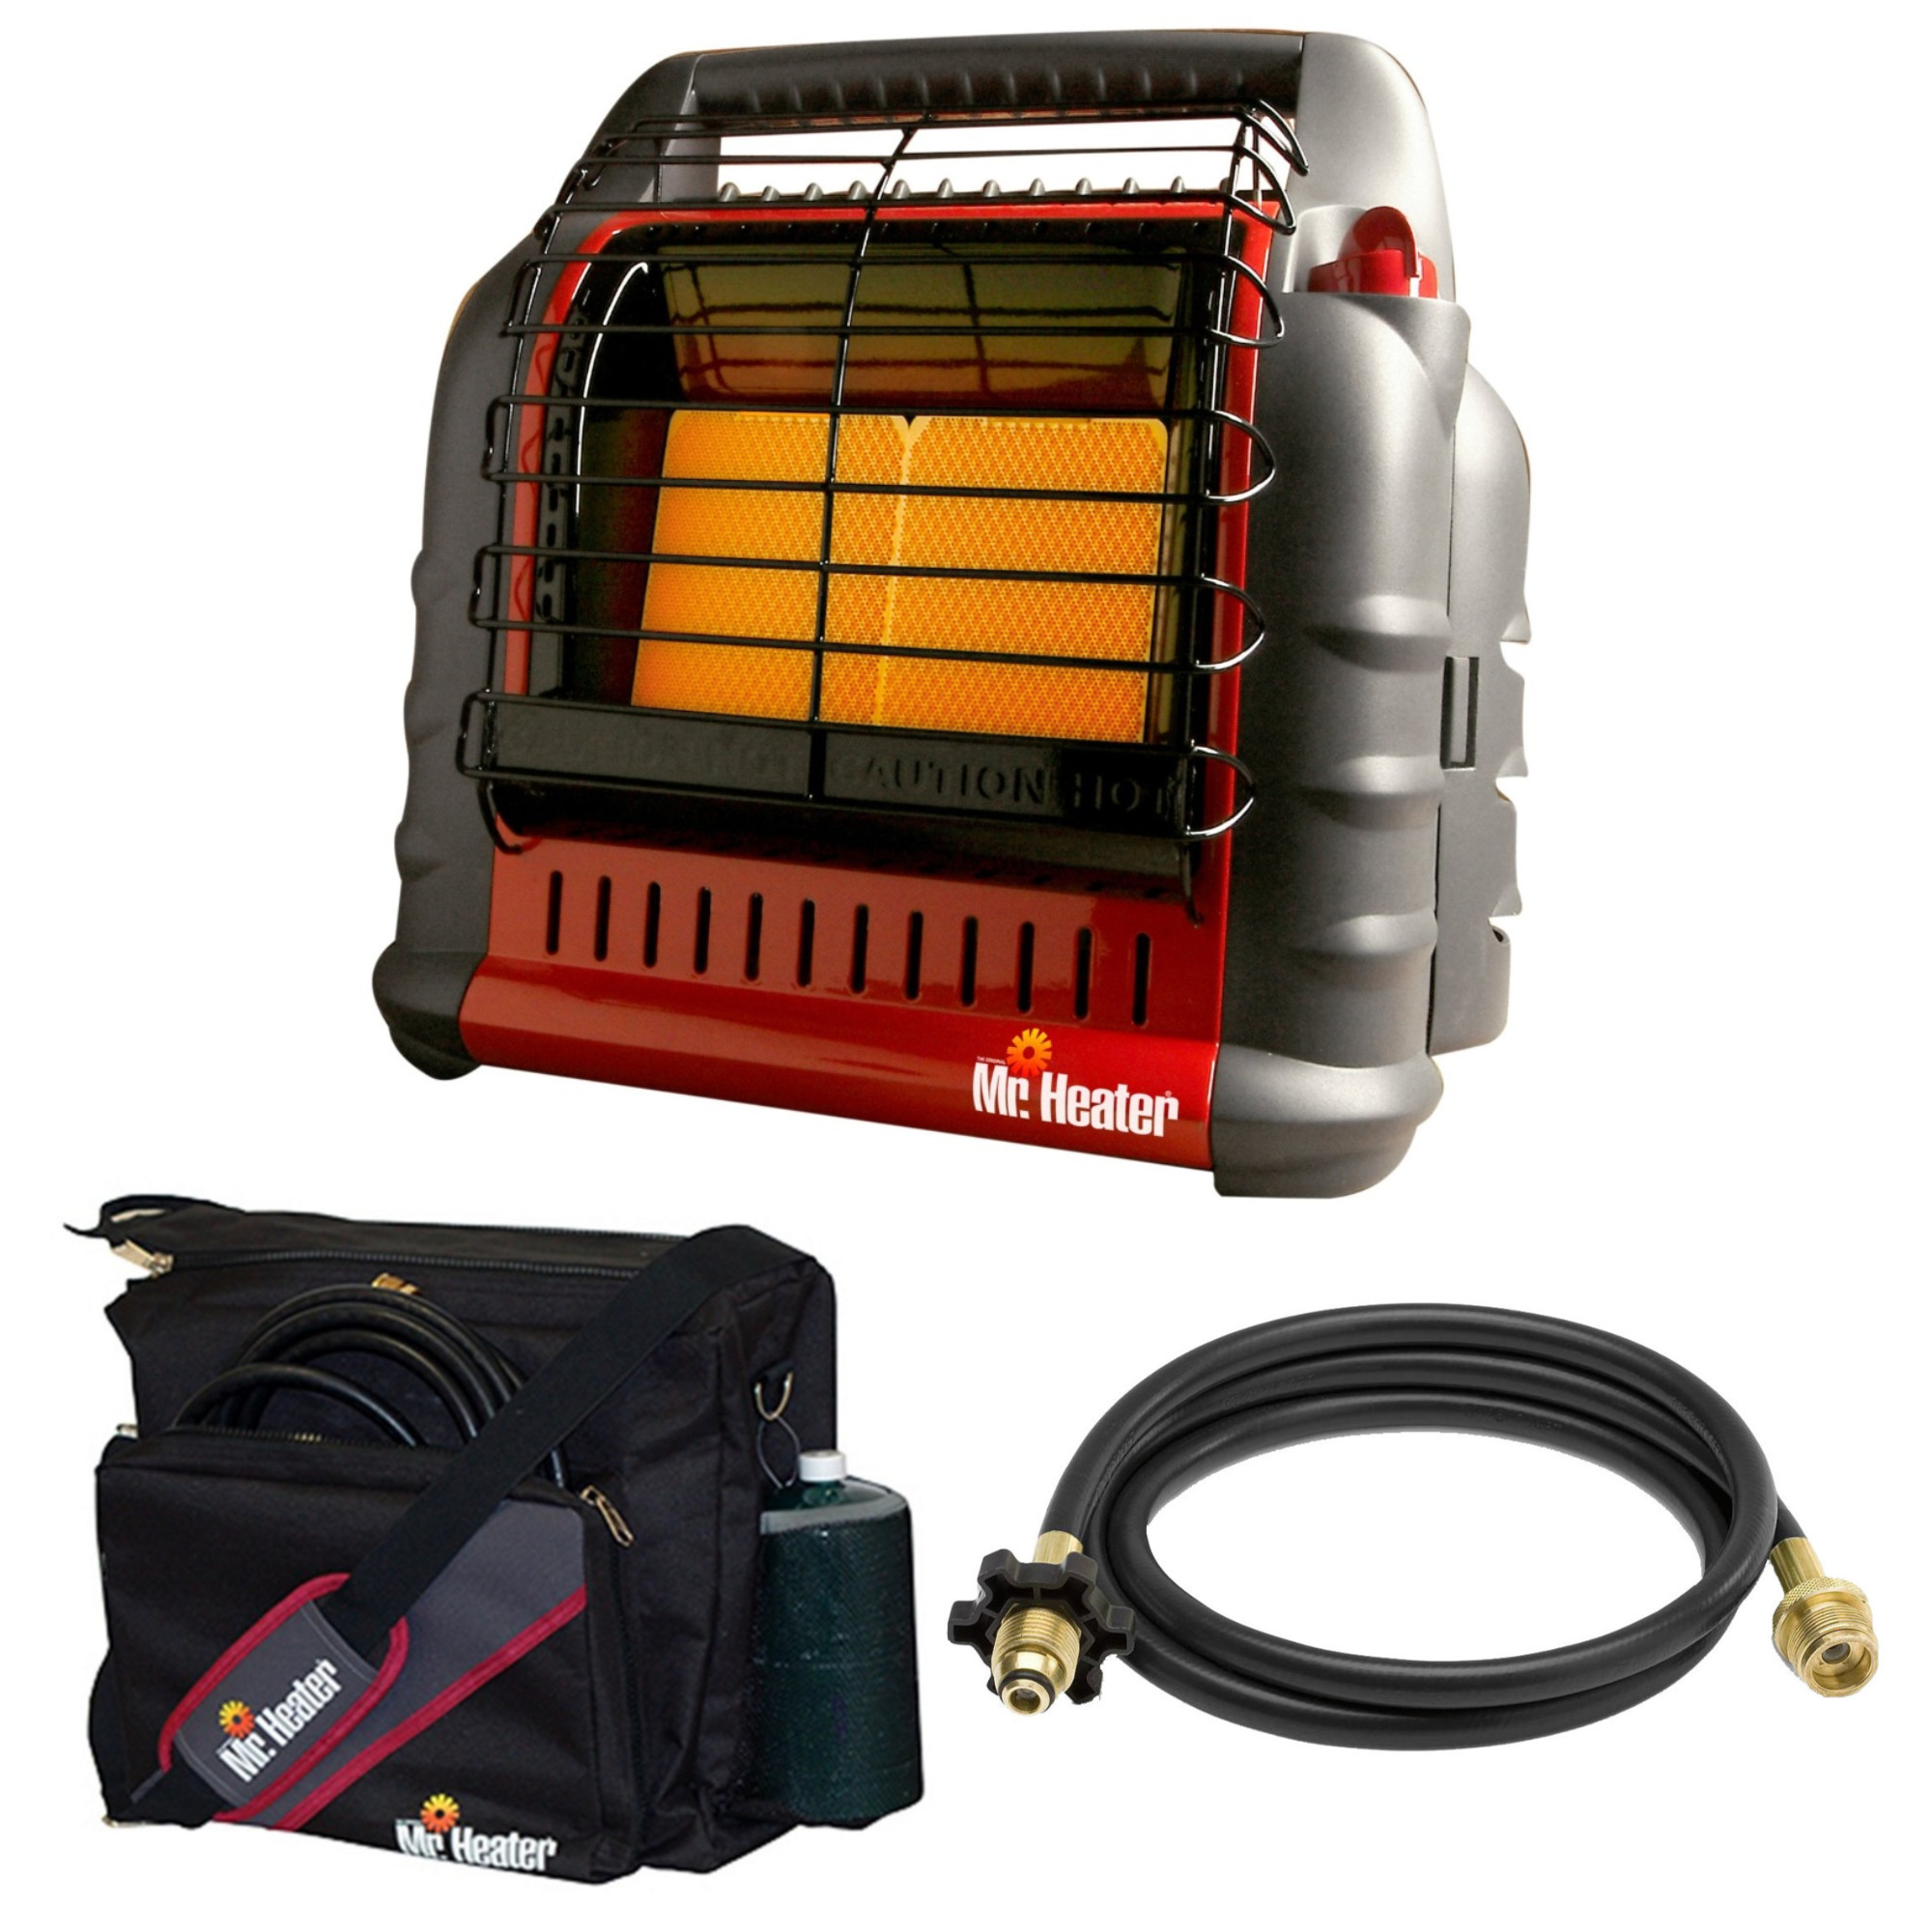 Mr. Heater Propane Big Buddy Portable Heater with 10' Propane Hose and Bag